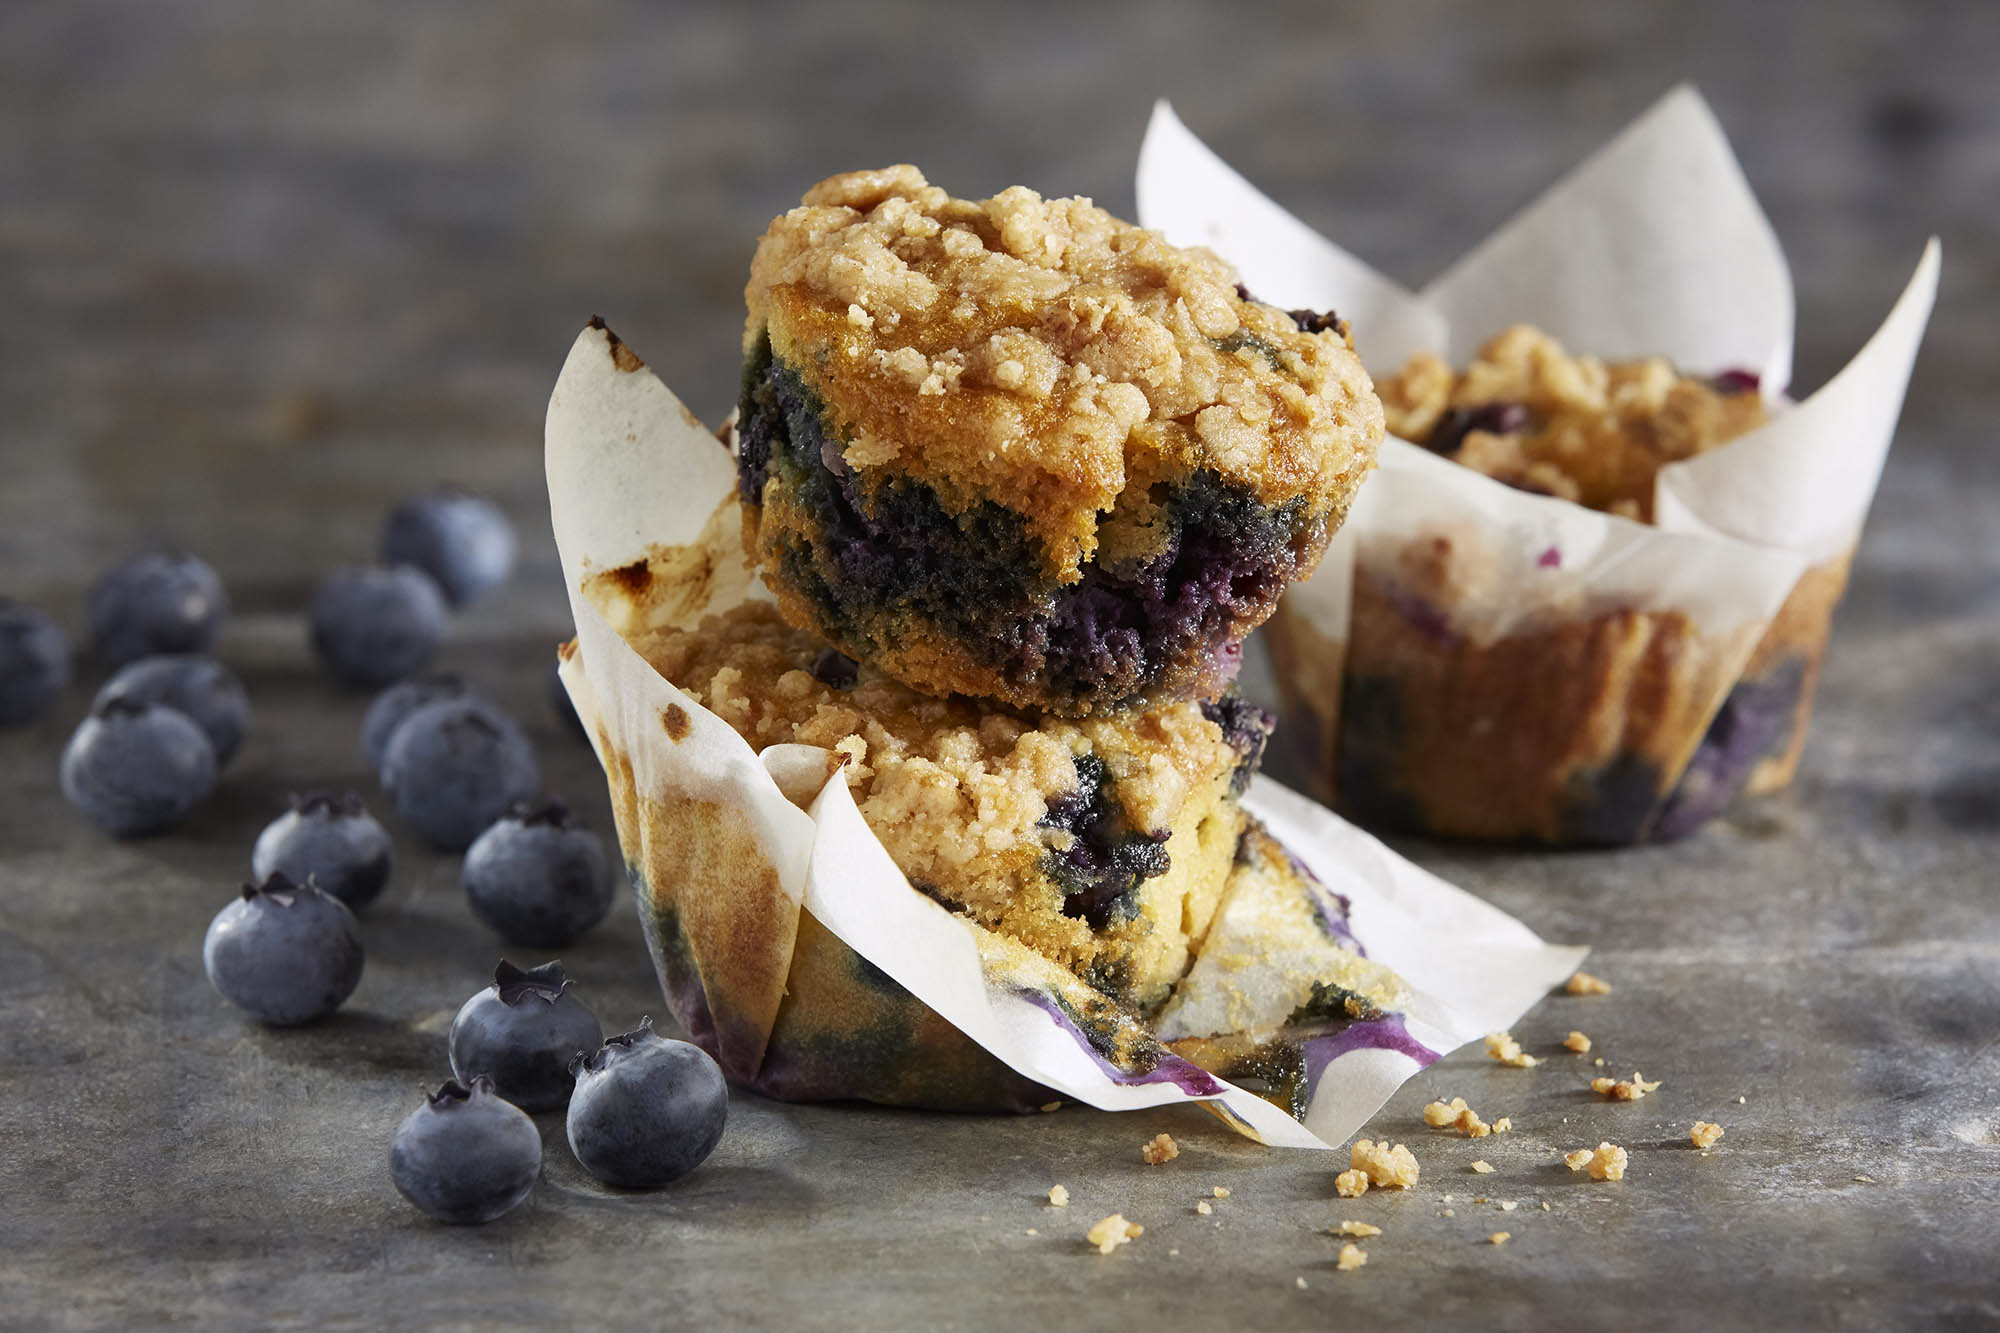 Gluten Free Blueberry Muffins with Almond Crumble